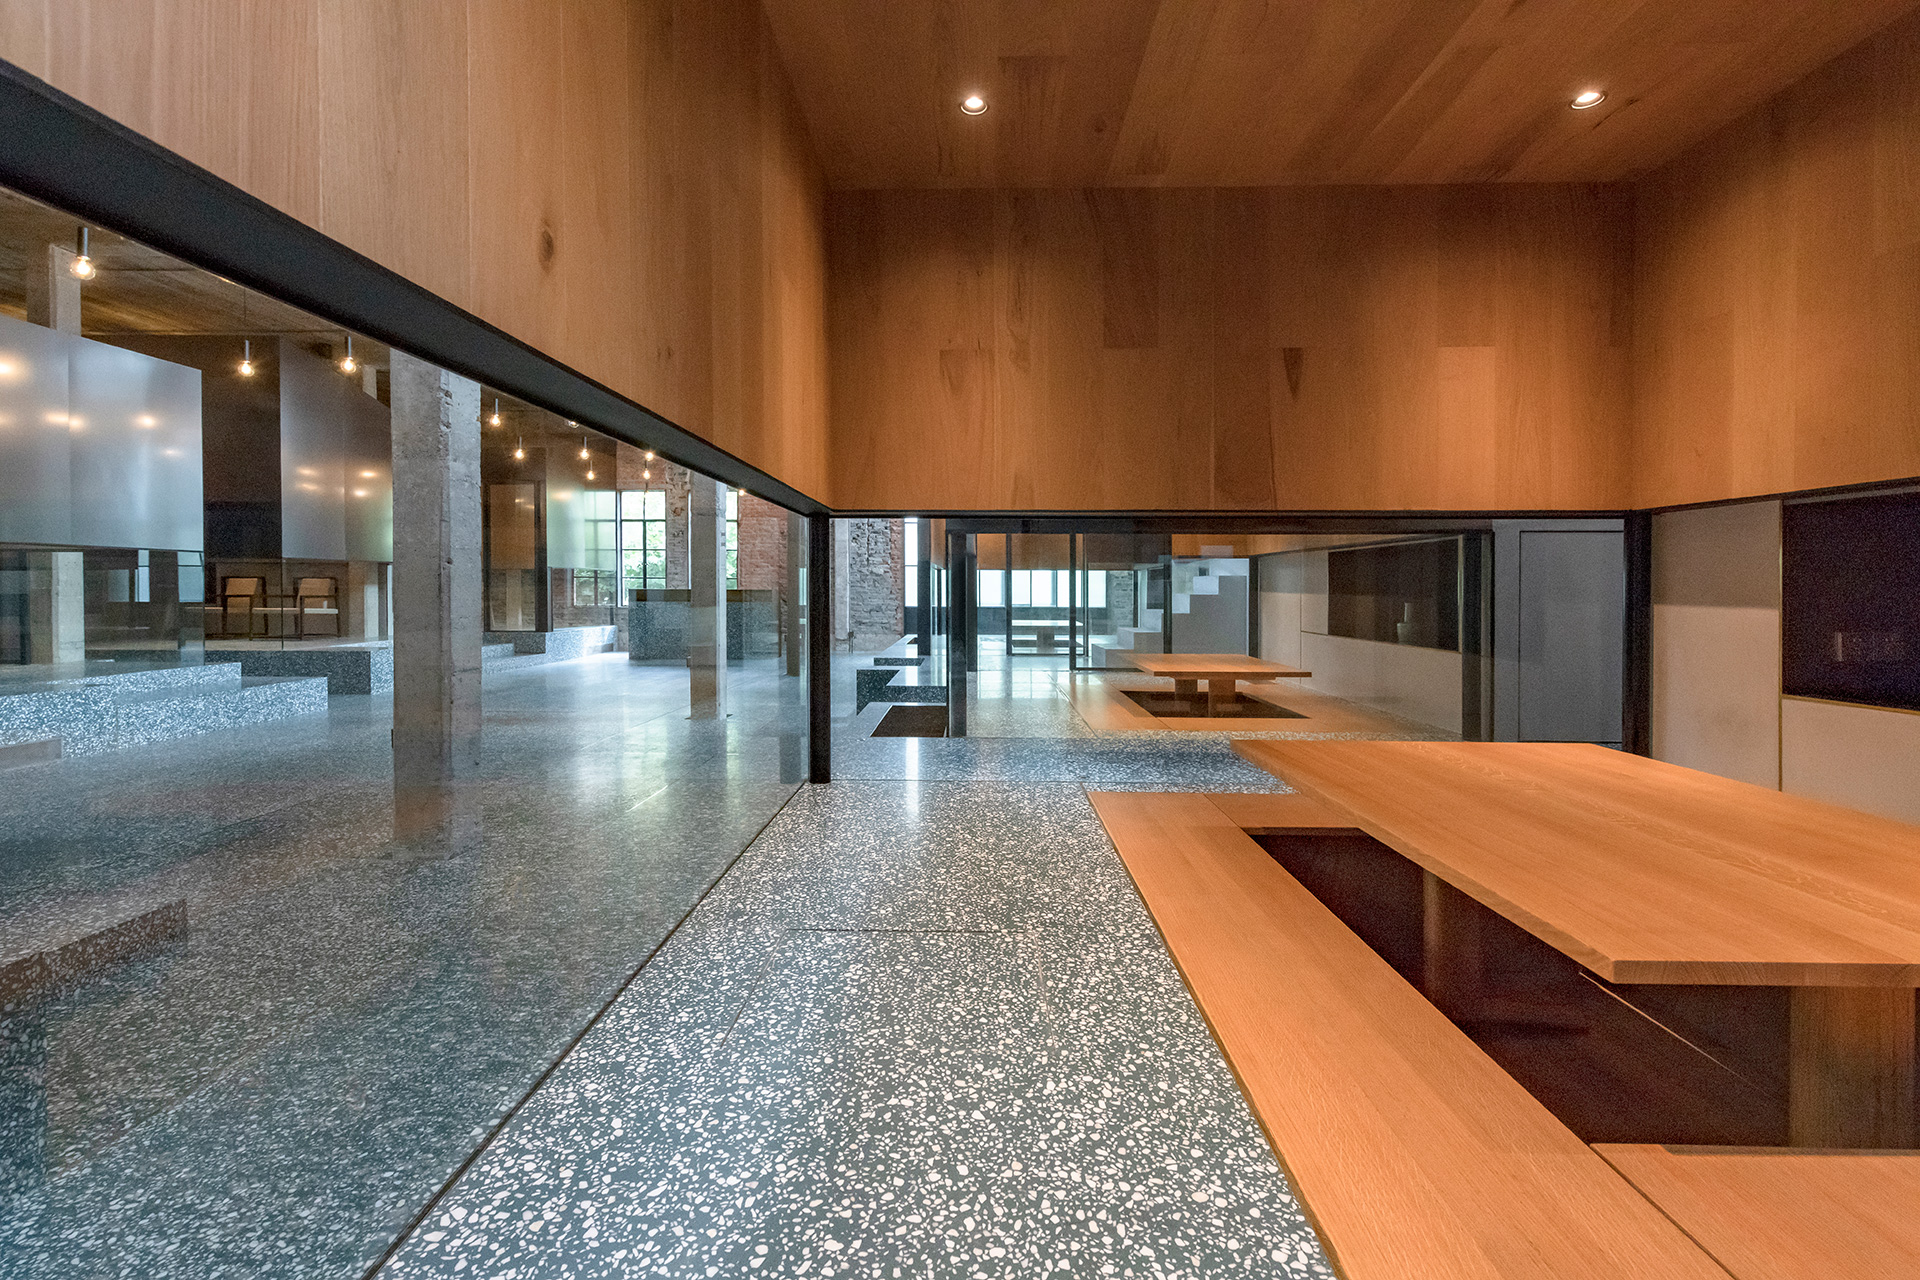 The lower level teahouse sits on a green terrazzo landscape with inbuilt oak seating | Tingtai Teahouse | Linehouse | STIRworld